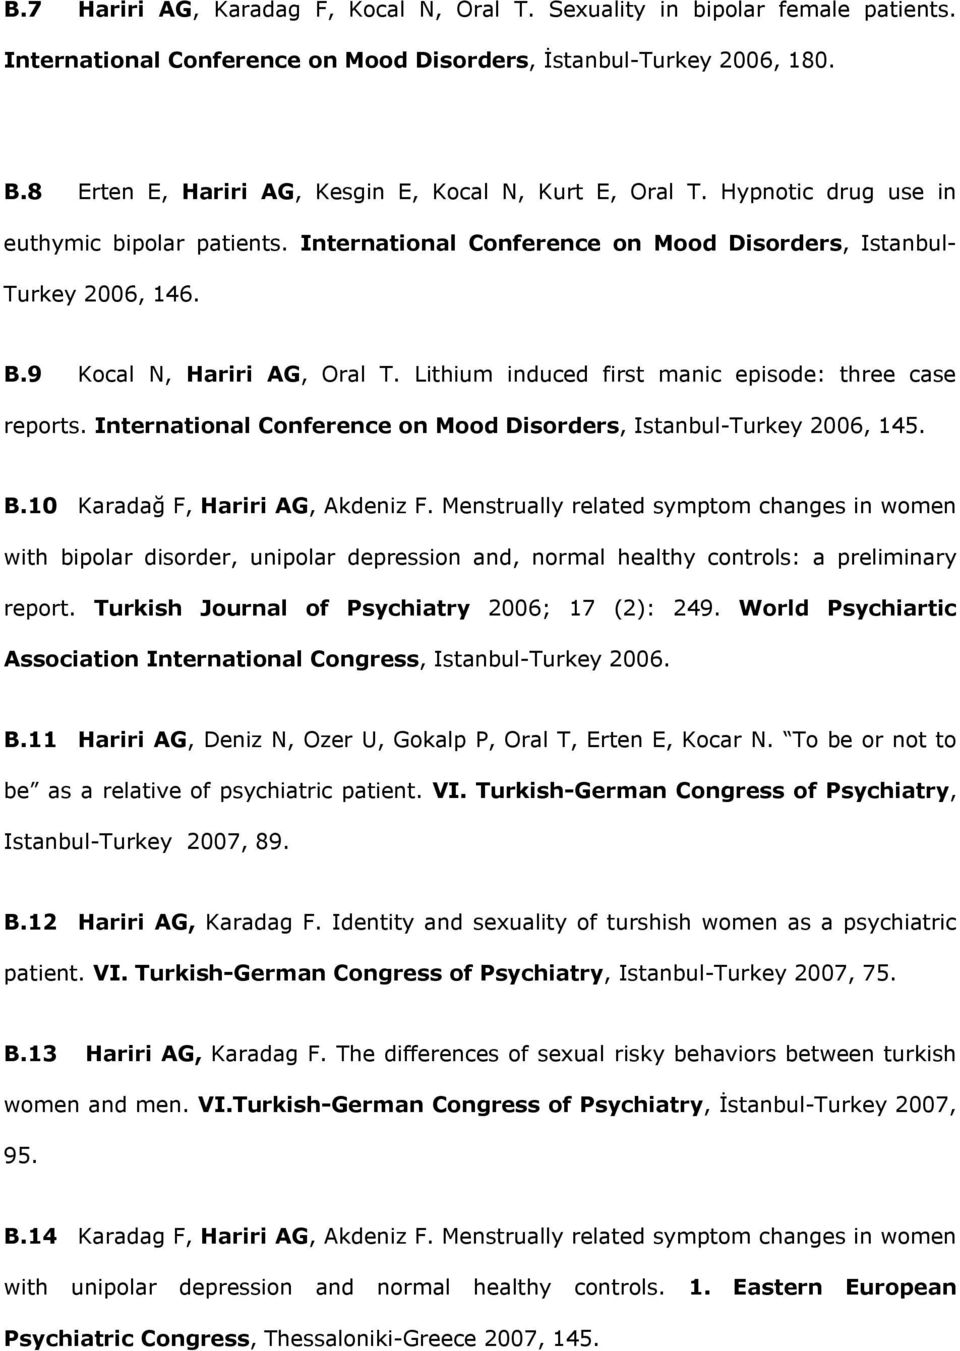 9 Kocal N, Hariri AG, Oral T. Lithium induced first manic episode: three case reports. International Conference on Mood Disorders, Istanbul-Turkey 2006, 145. B.10 Karadağ F, Hariri AG, Akdeniz F.